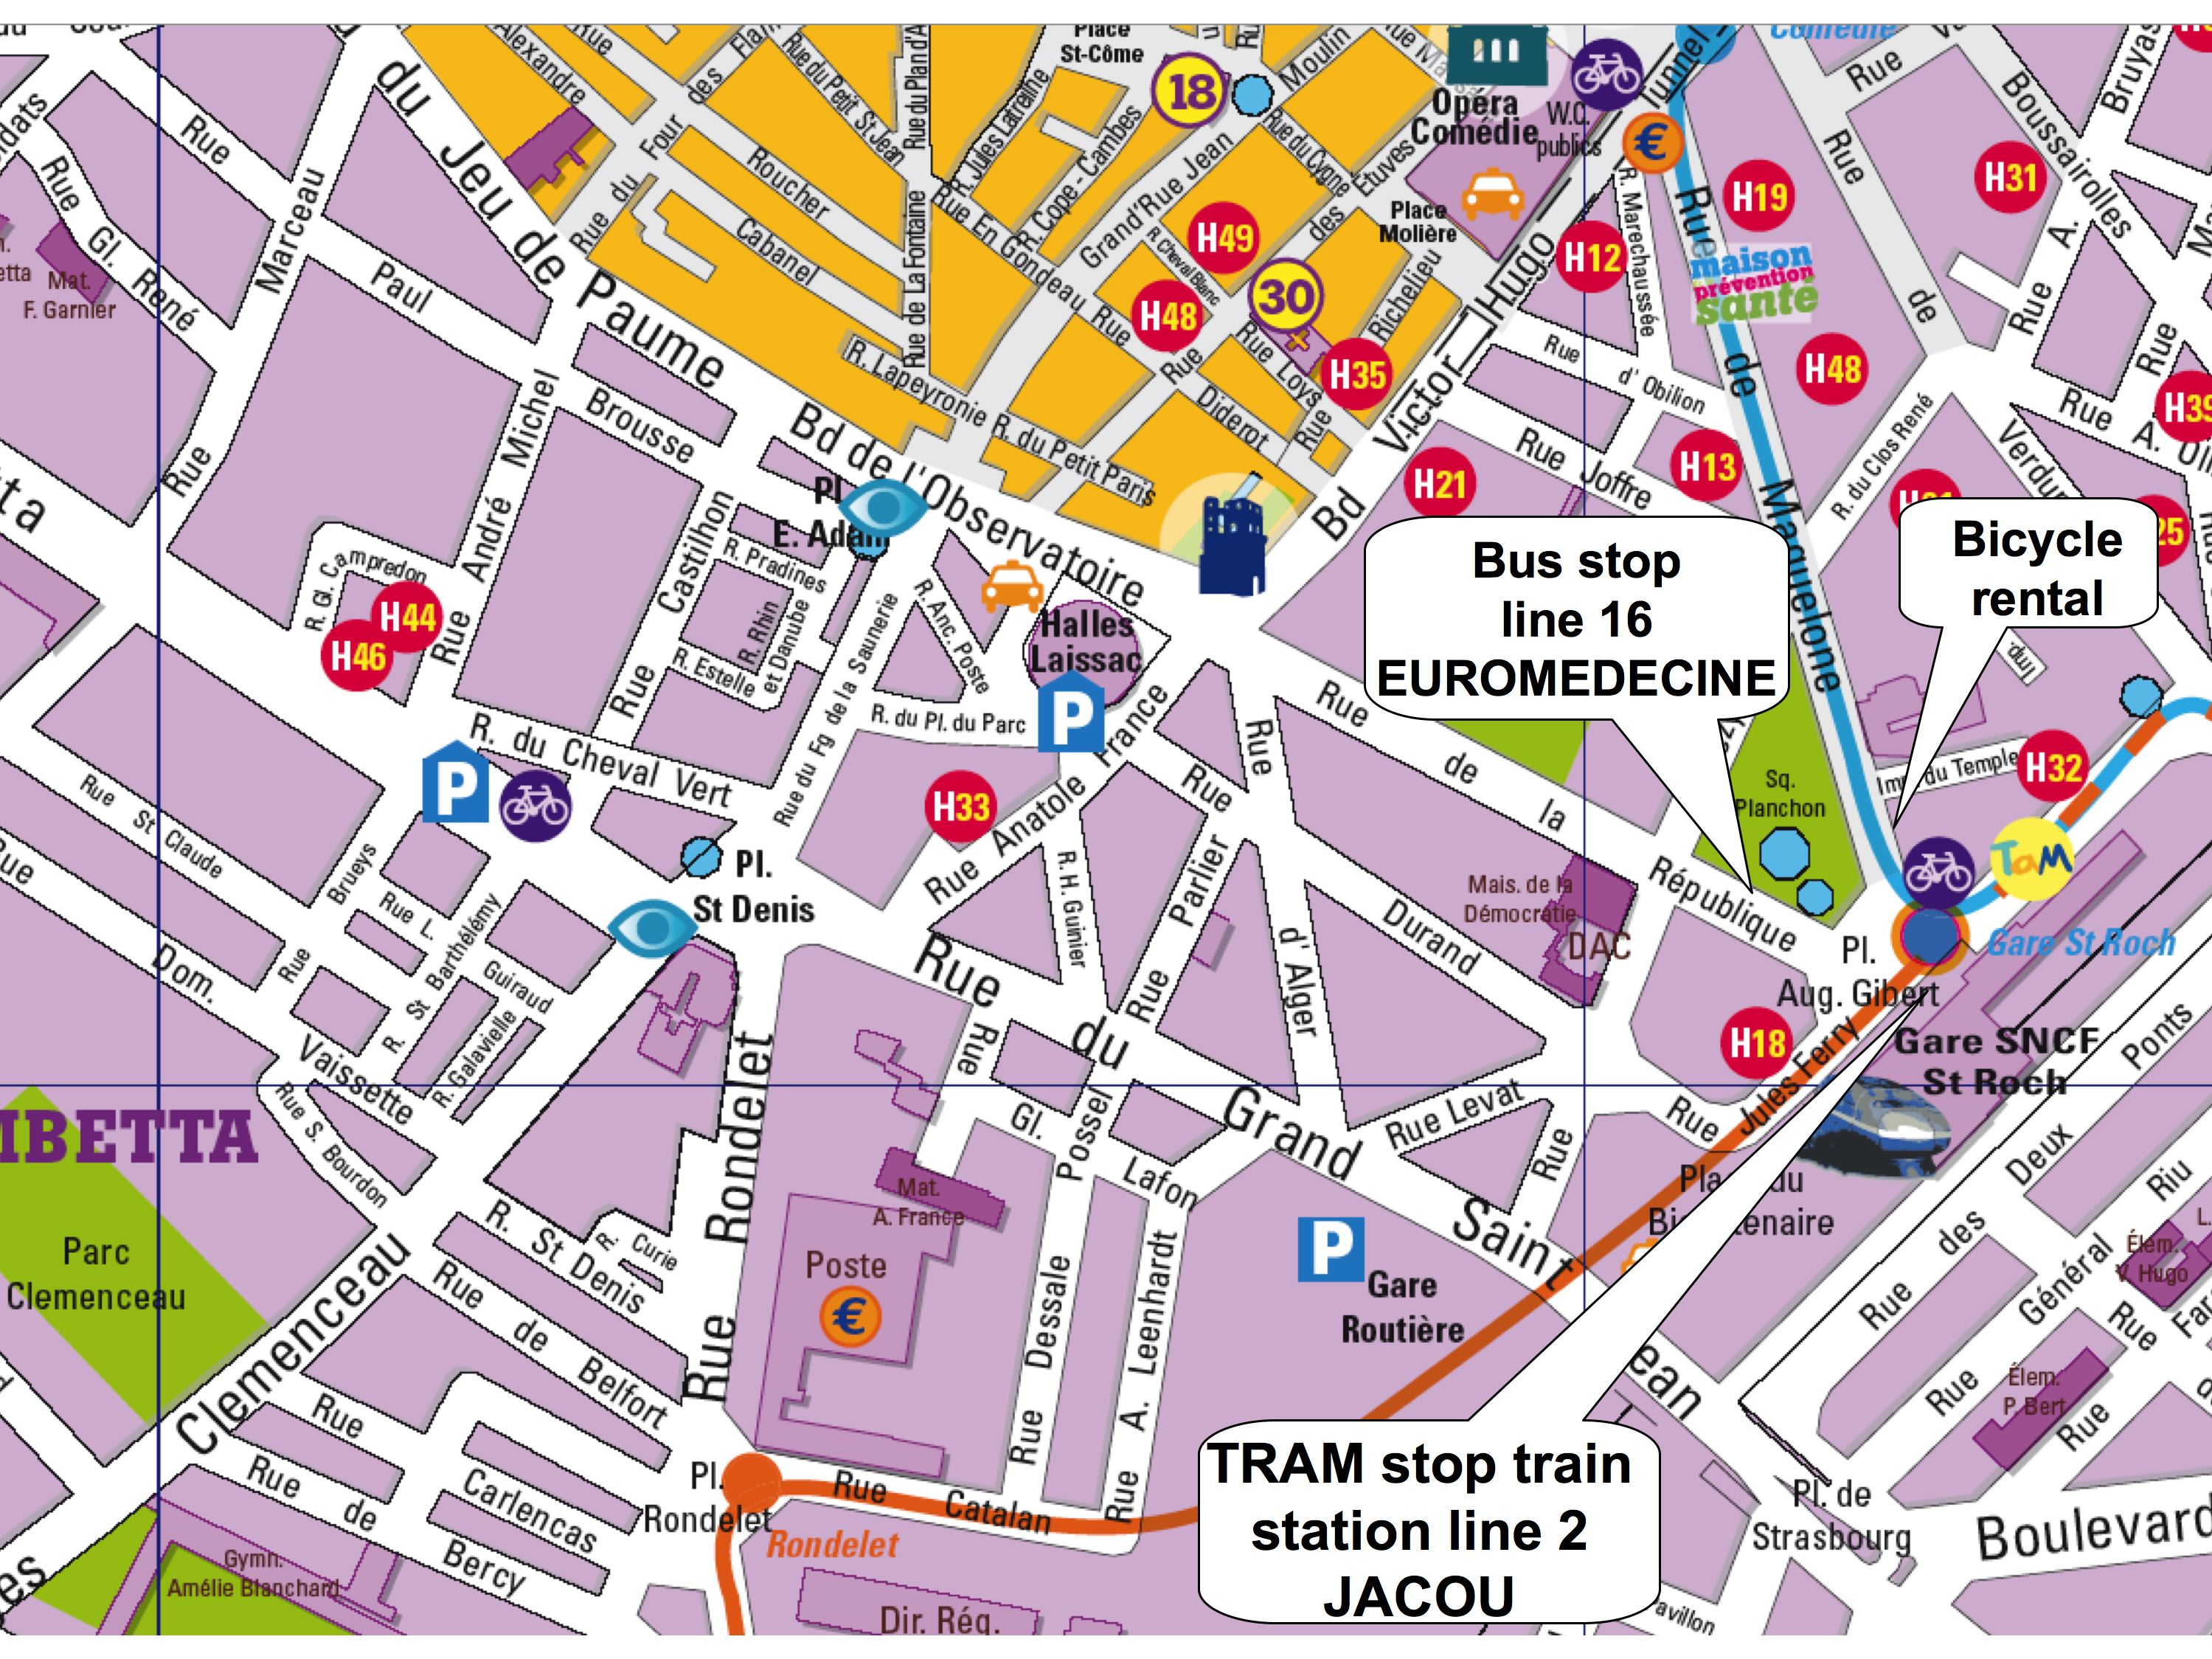 ENPER 2009 – Amsterdam Tourist Attractions Map Pdf